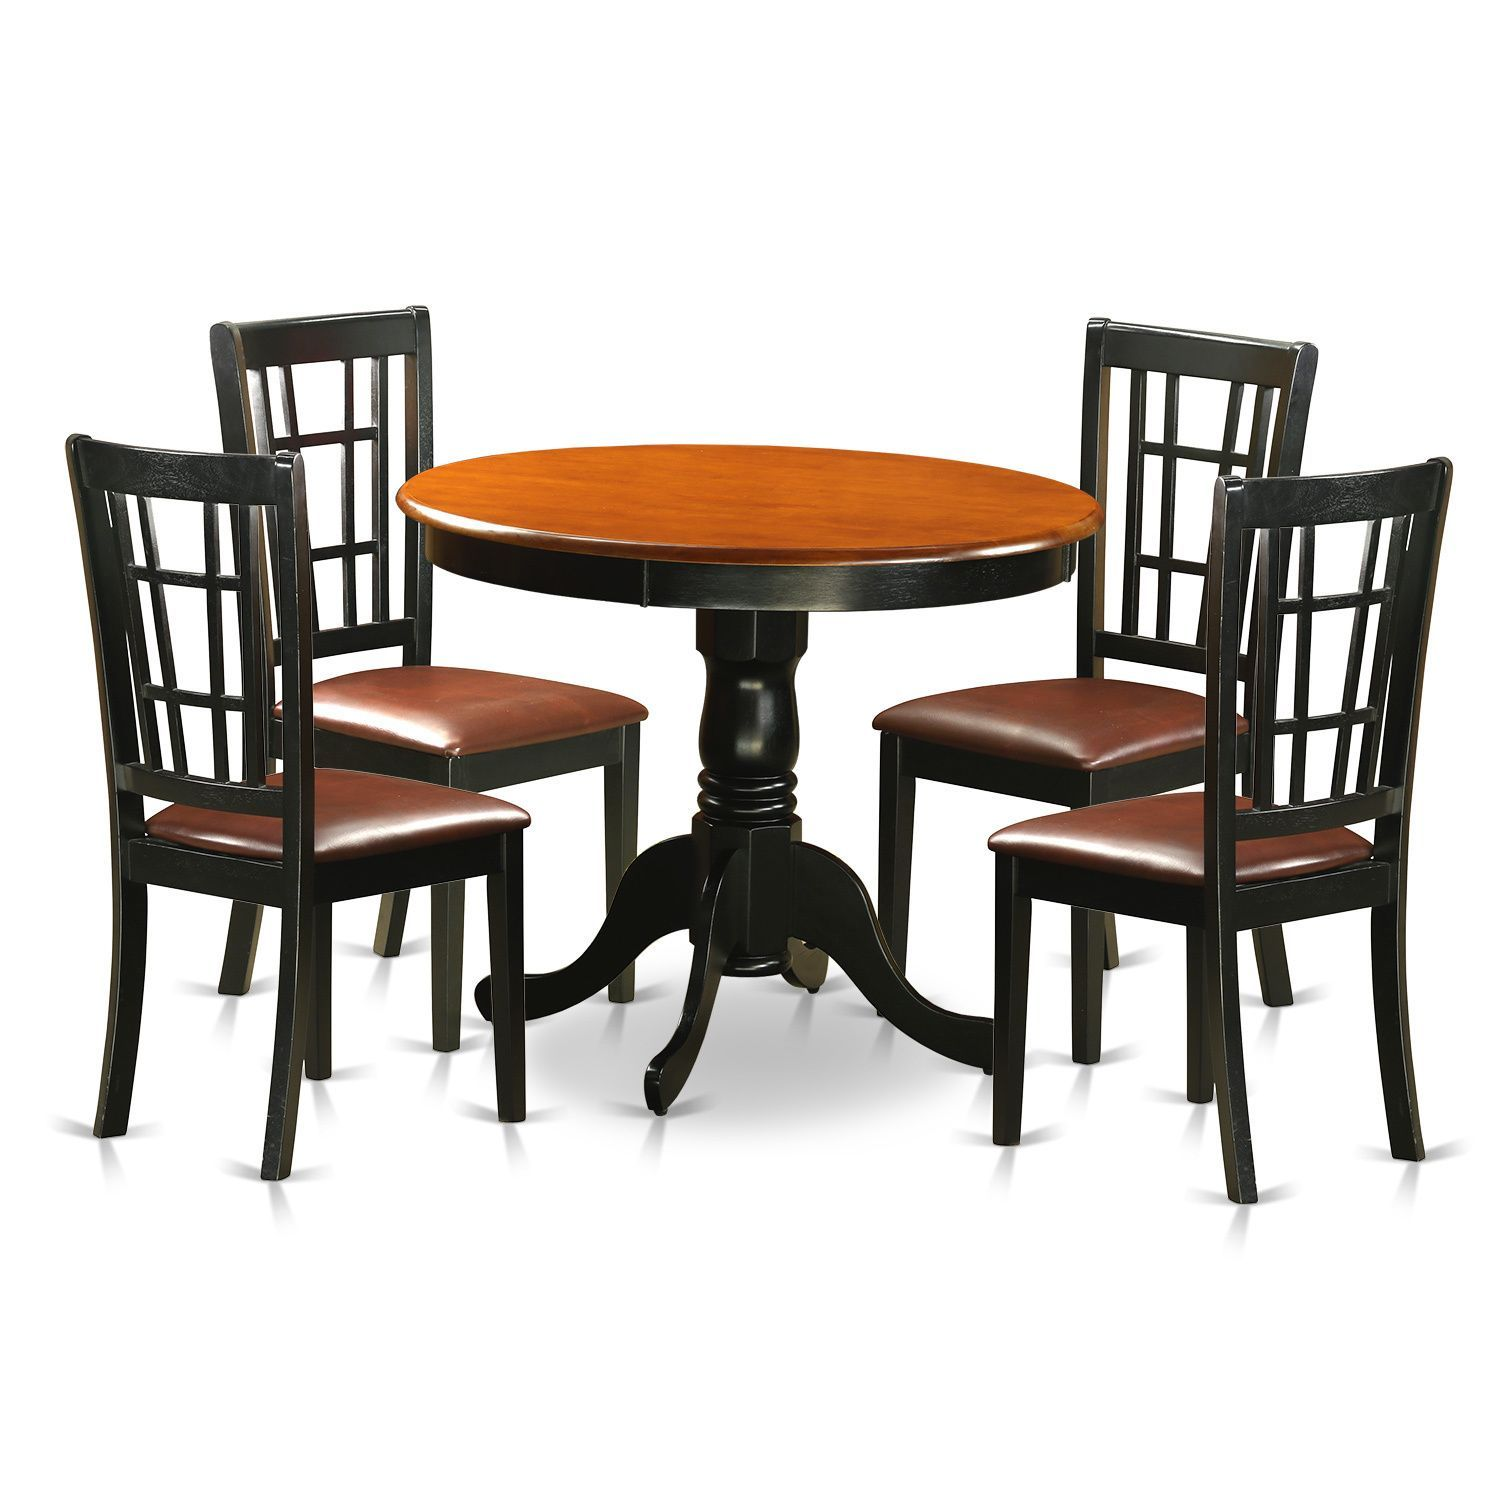 Round dining table and chairs for 4  Antique piece Dining Table with  Chairs Finished in Black and